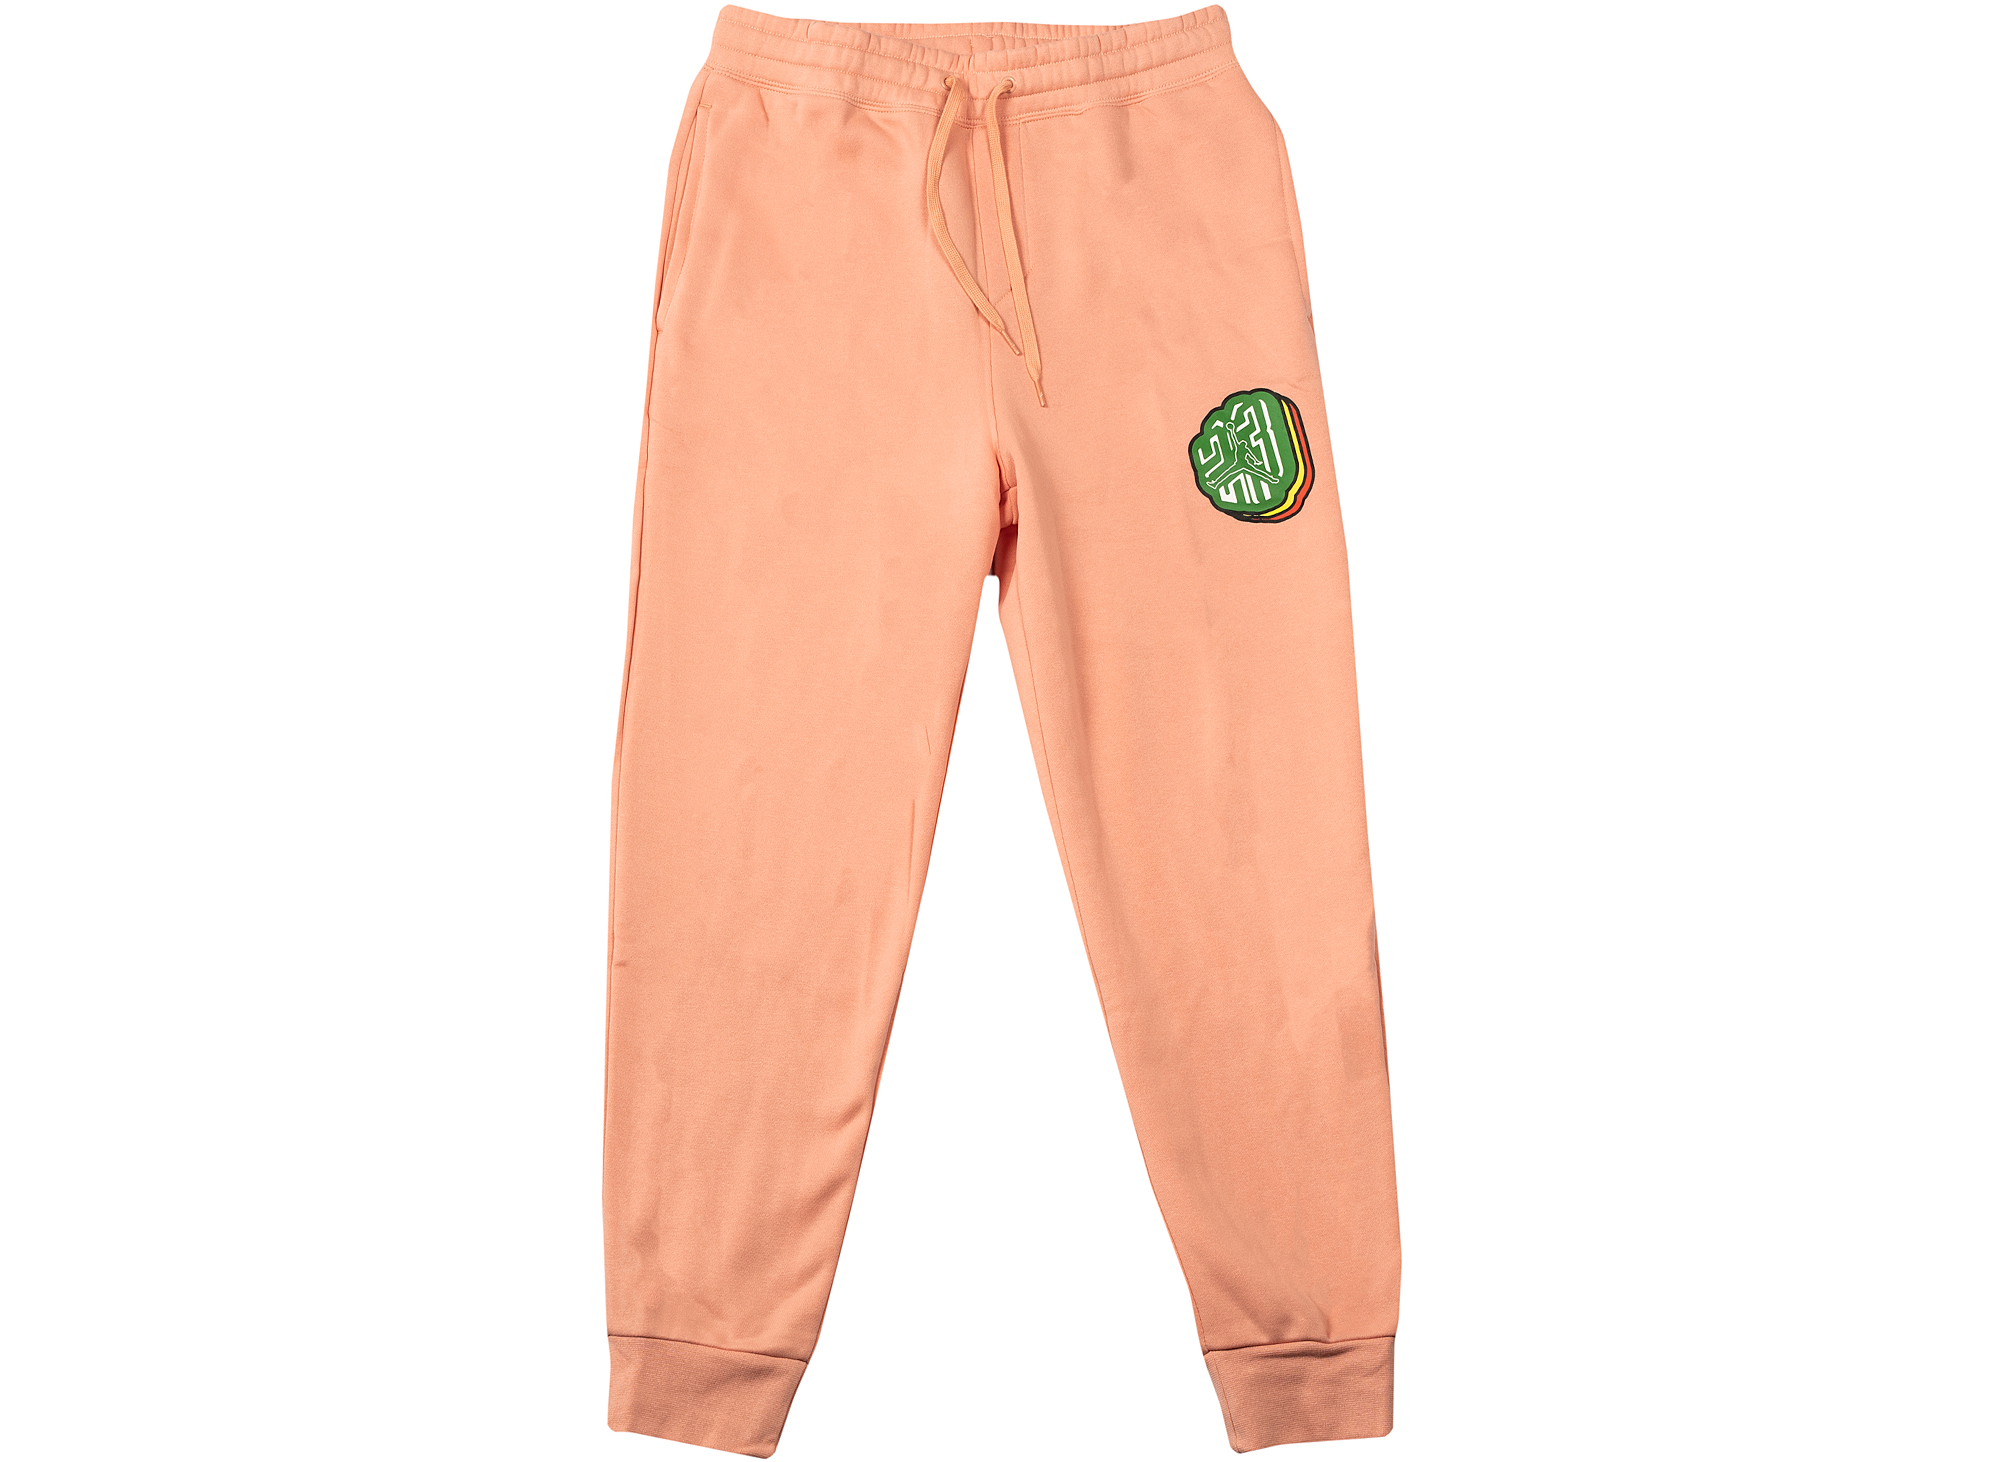 Jordan Jumpman Sticker Pants in Pink